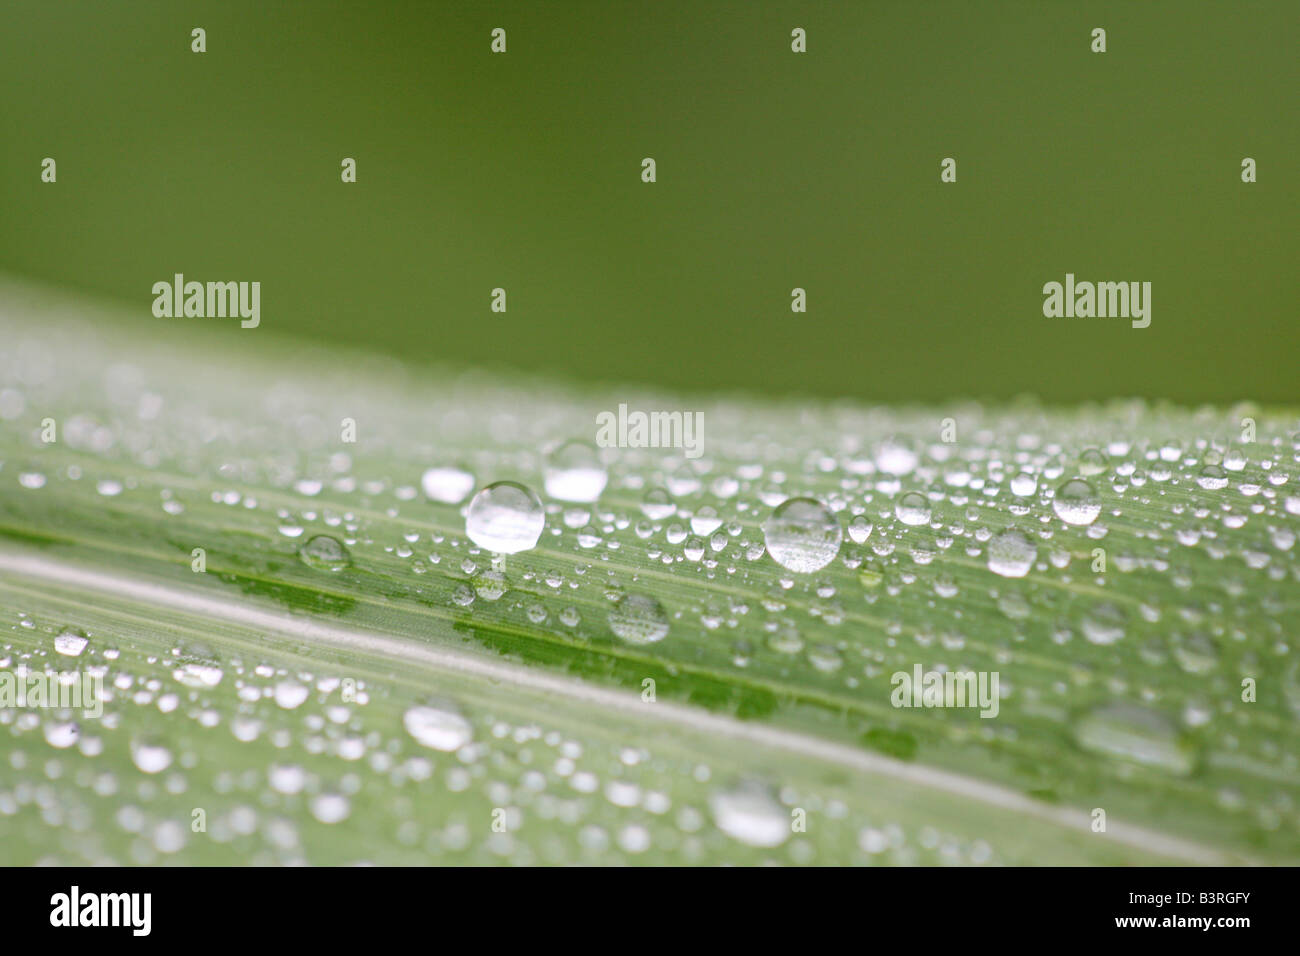 close up of water drops on leaf surface - Stock Image